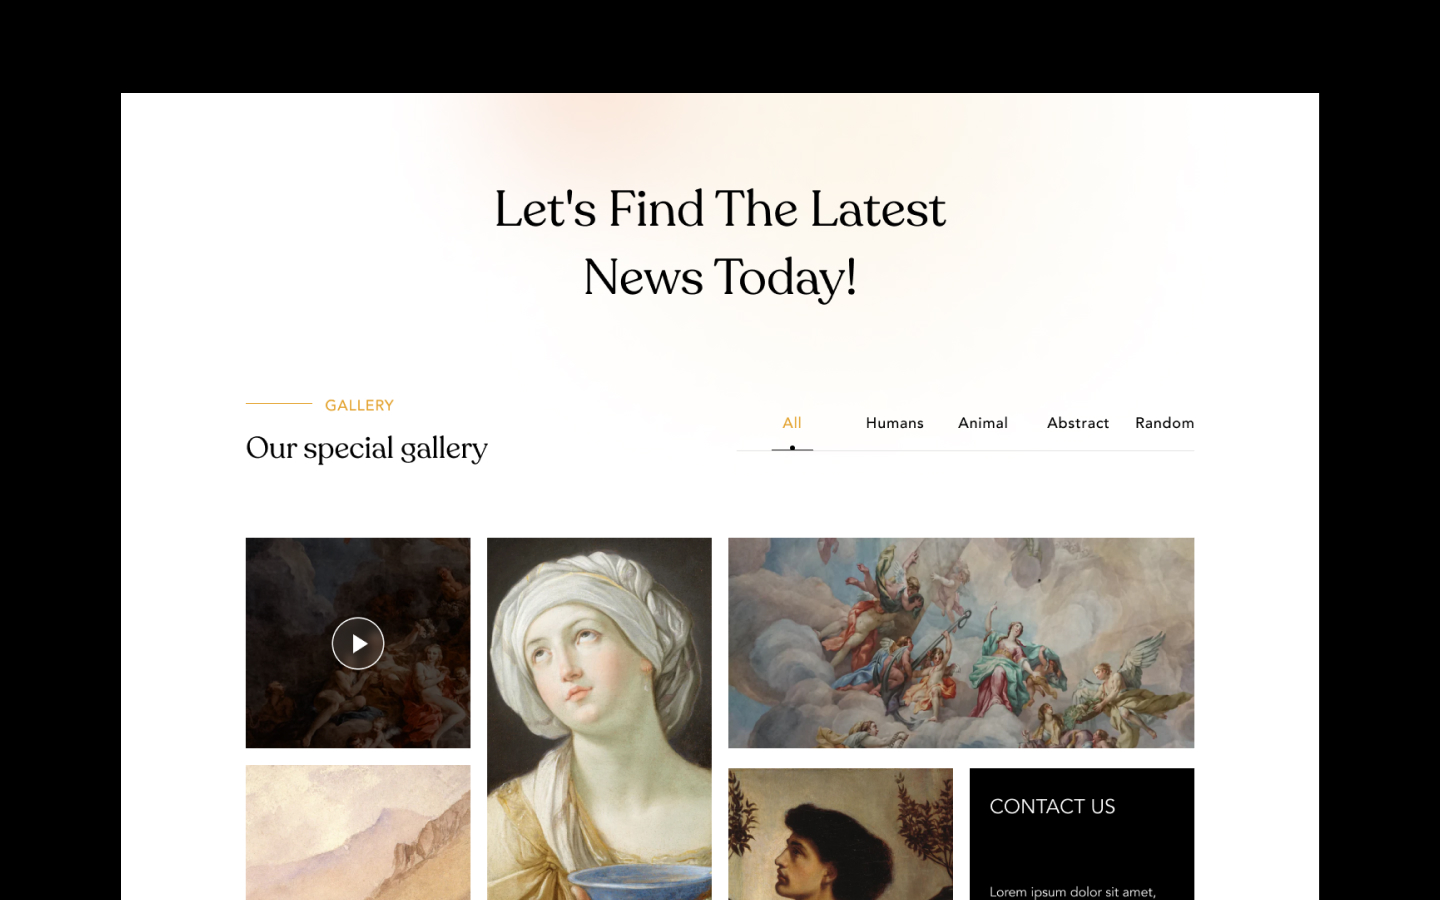 Grid based gallery section, perfect for your own product gallery, portfolio section etc